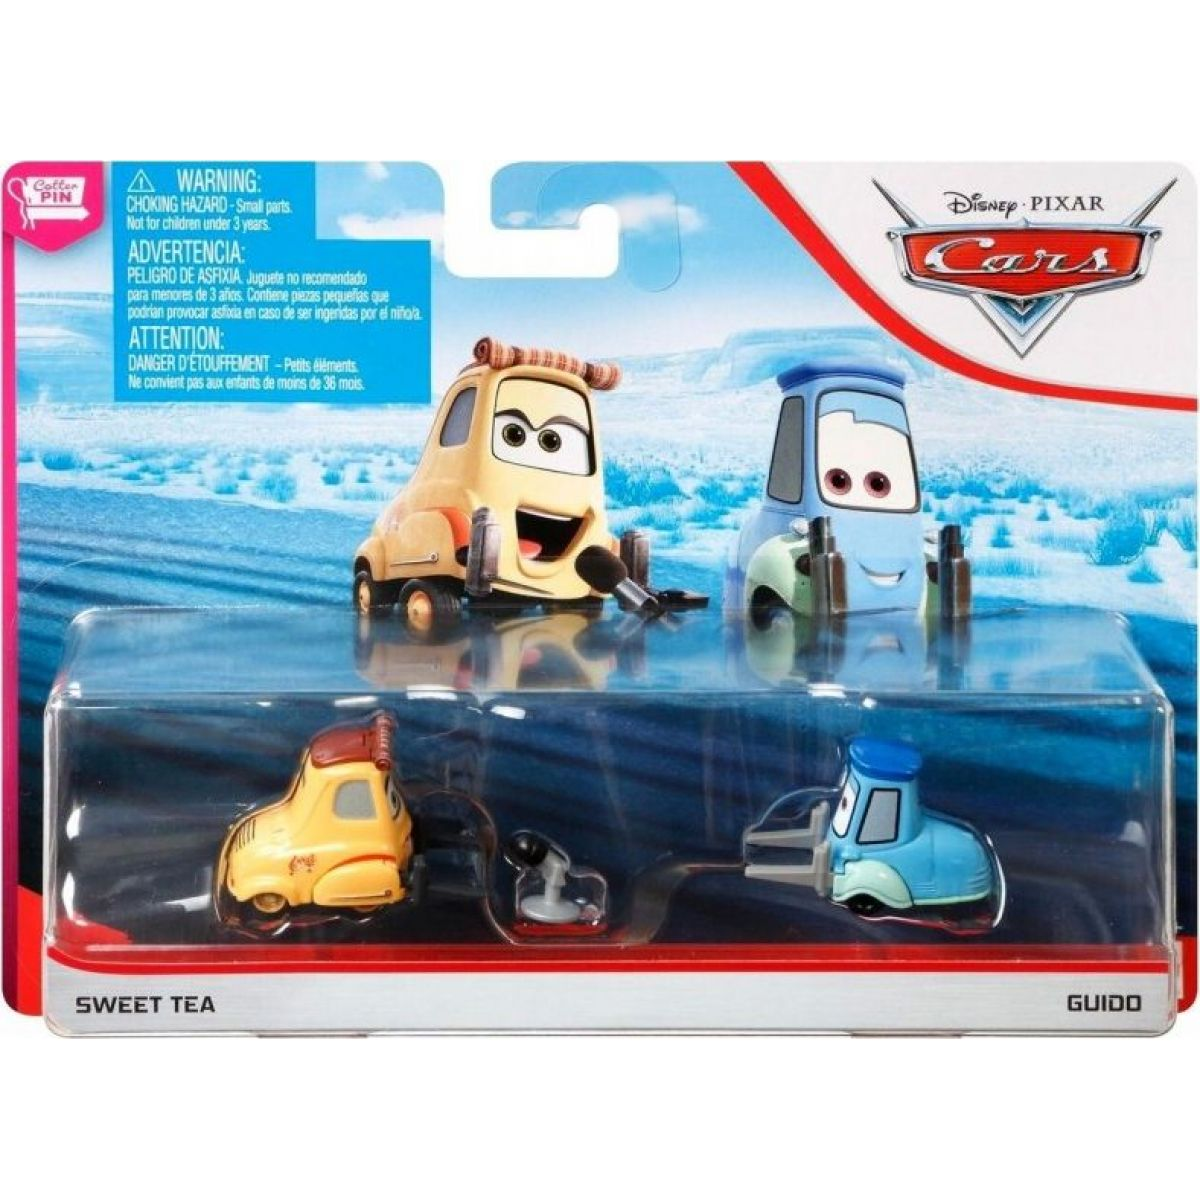 Mattel Cars 3 auta 2 ks Sweet Tea a Guido